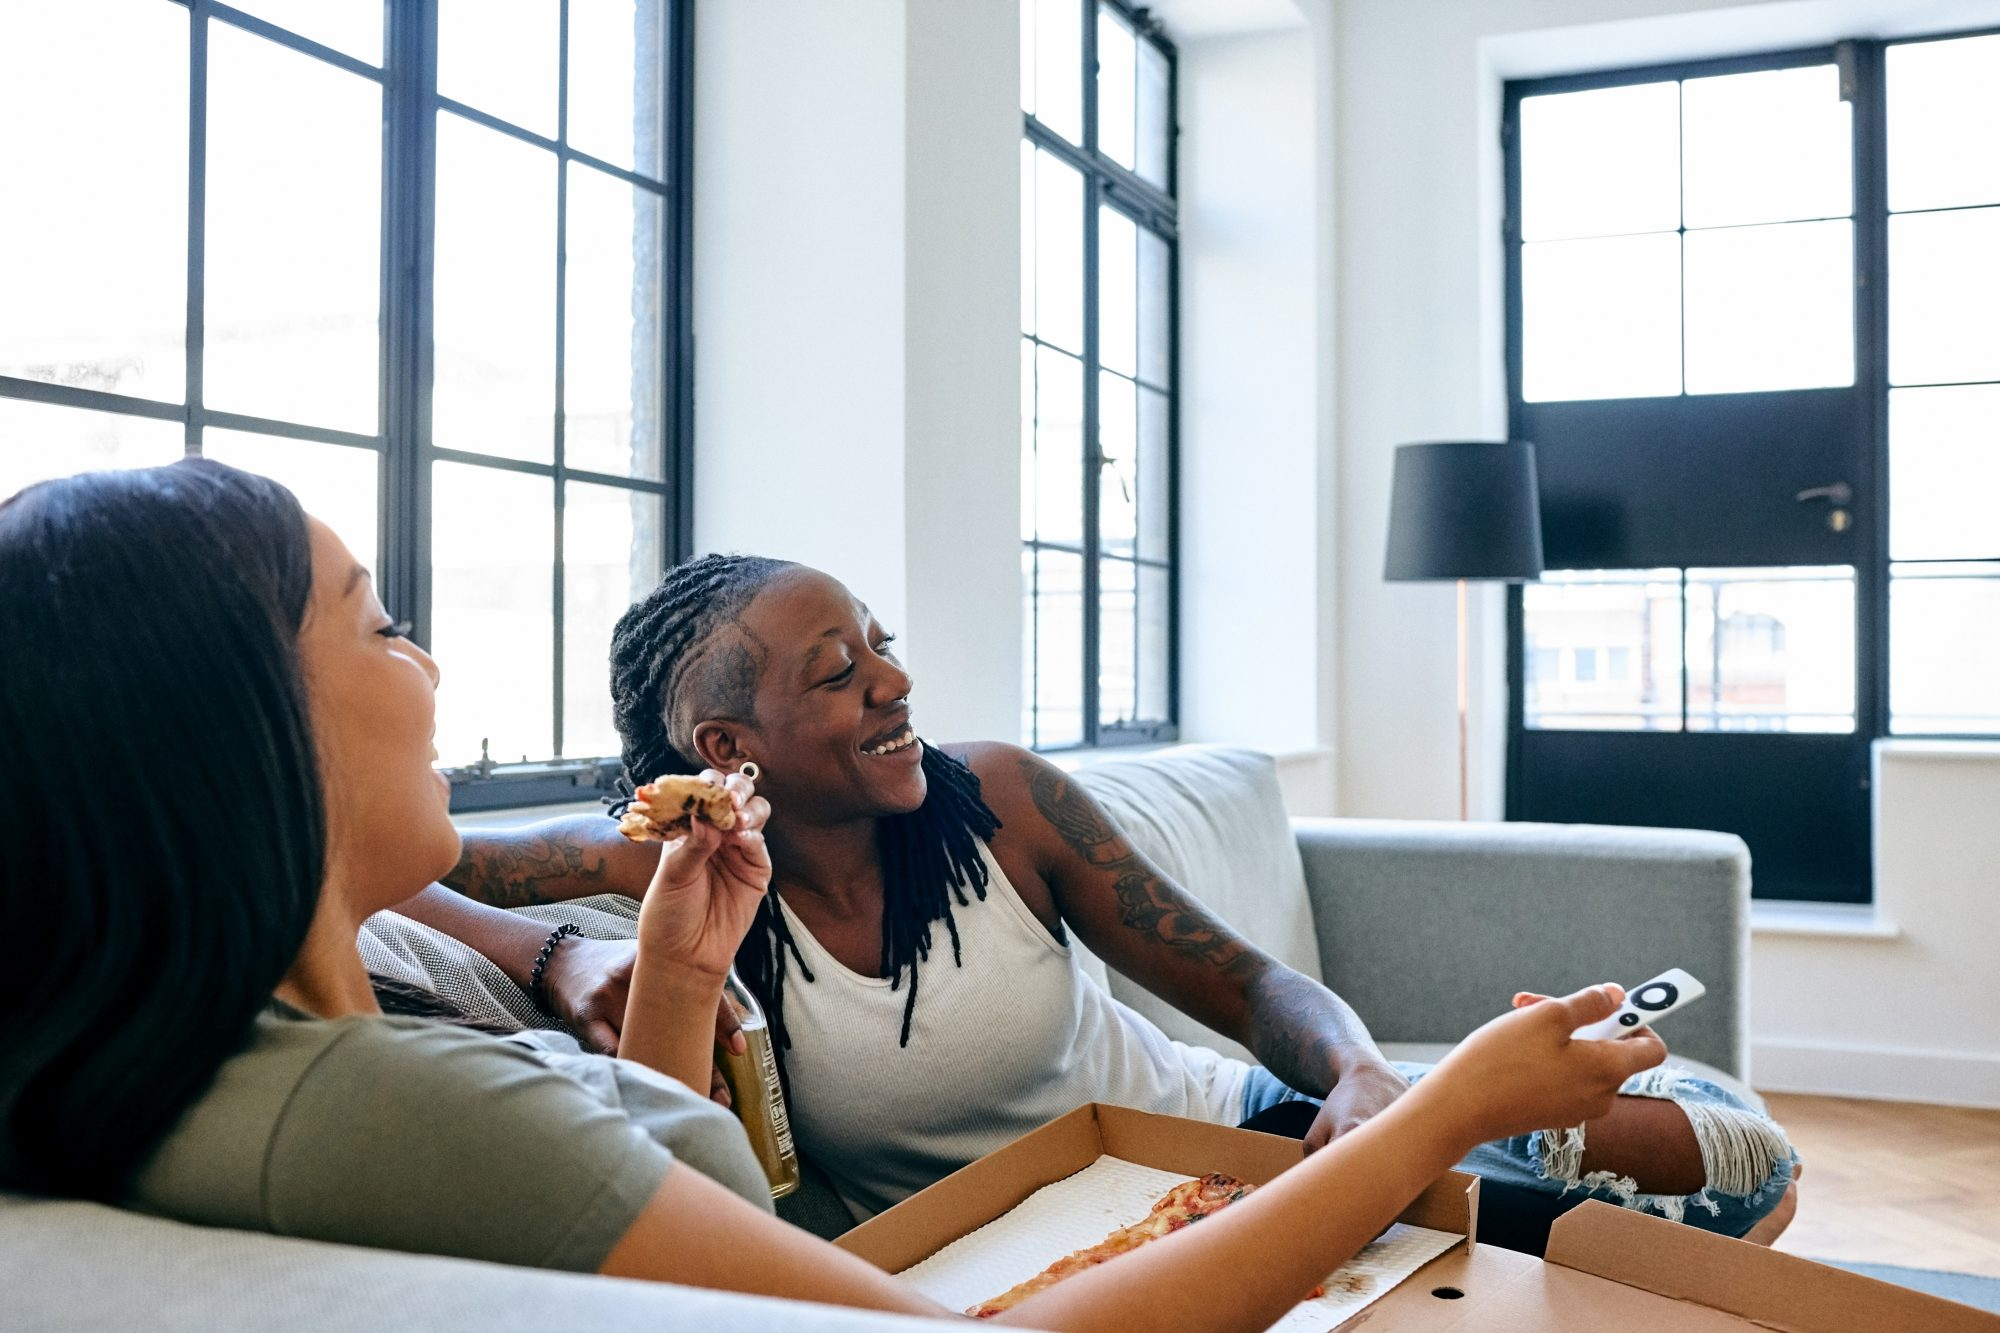 two woman watching movie on couch eating pizza